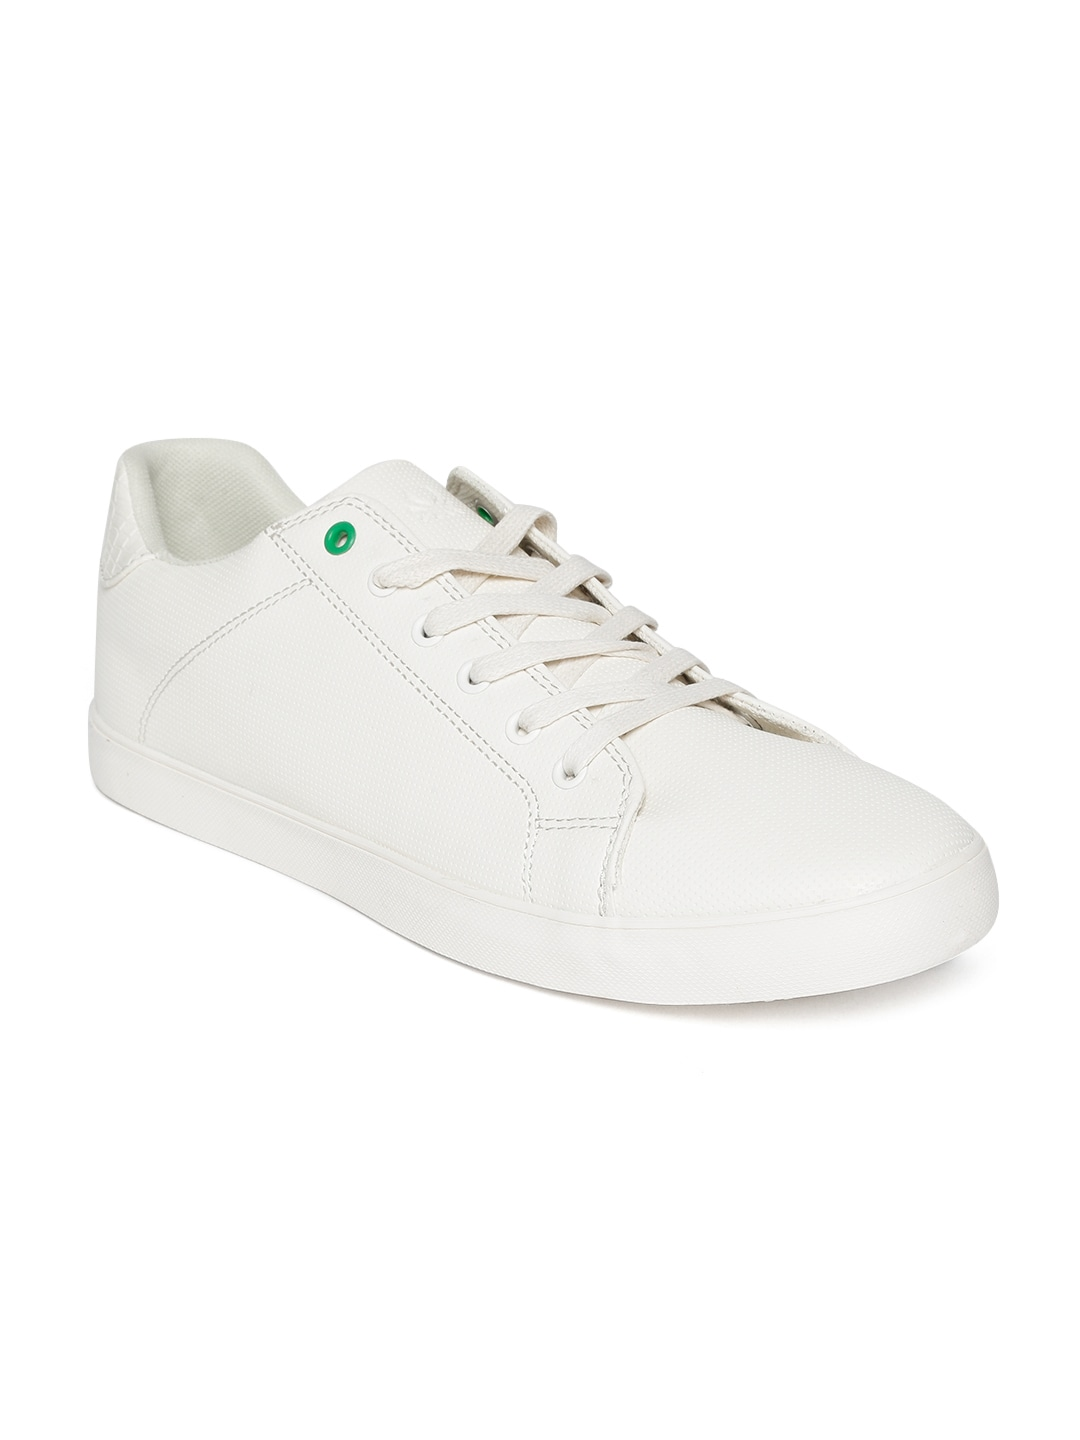 7fce957711d United Colors of Benetton Shoes - Buy UCB Sneakers Online